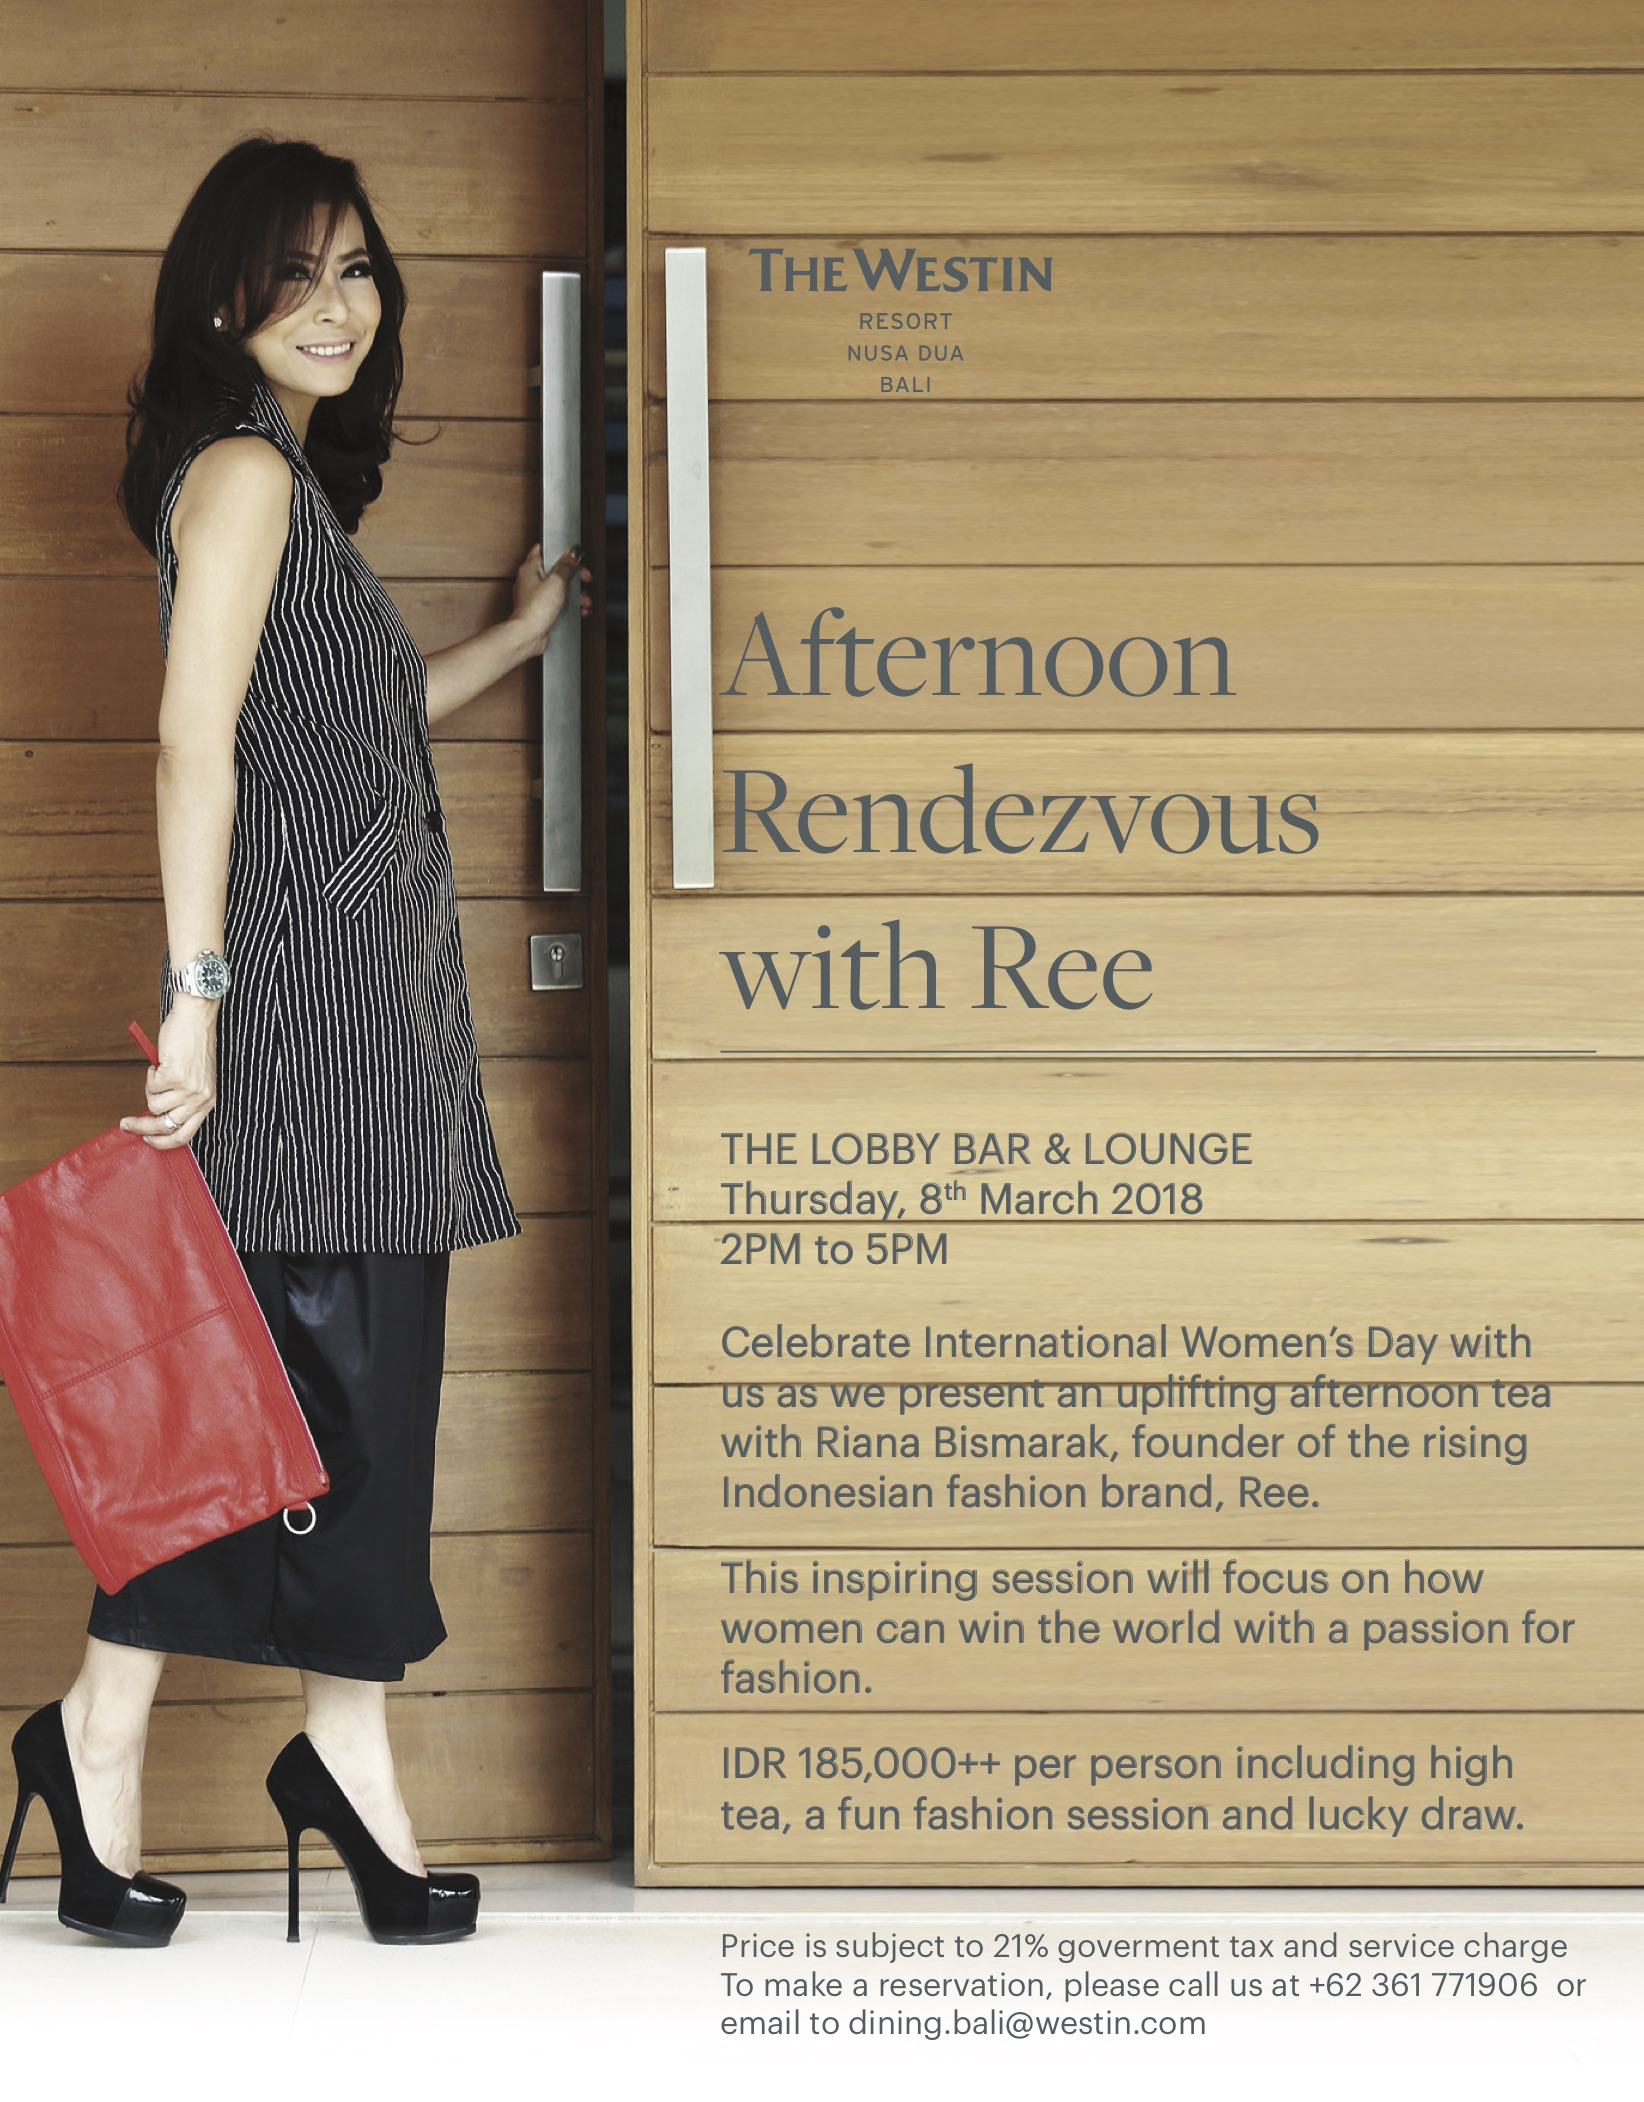 Afternoon Rendezvous with Ree at The Westin Resort Nusa Dua, Bali